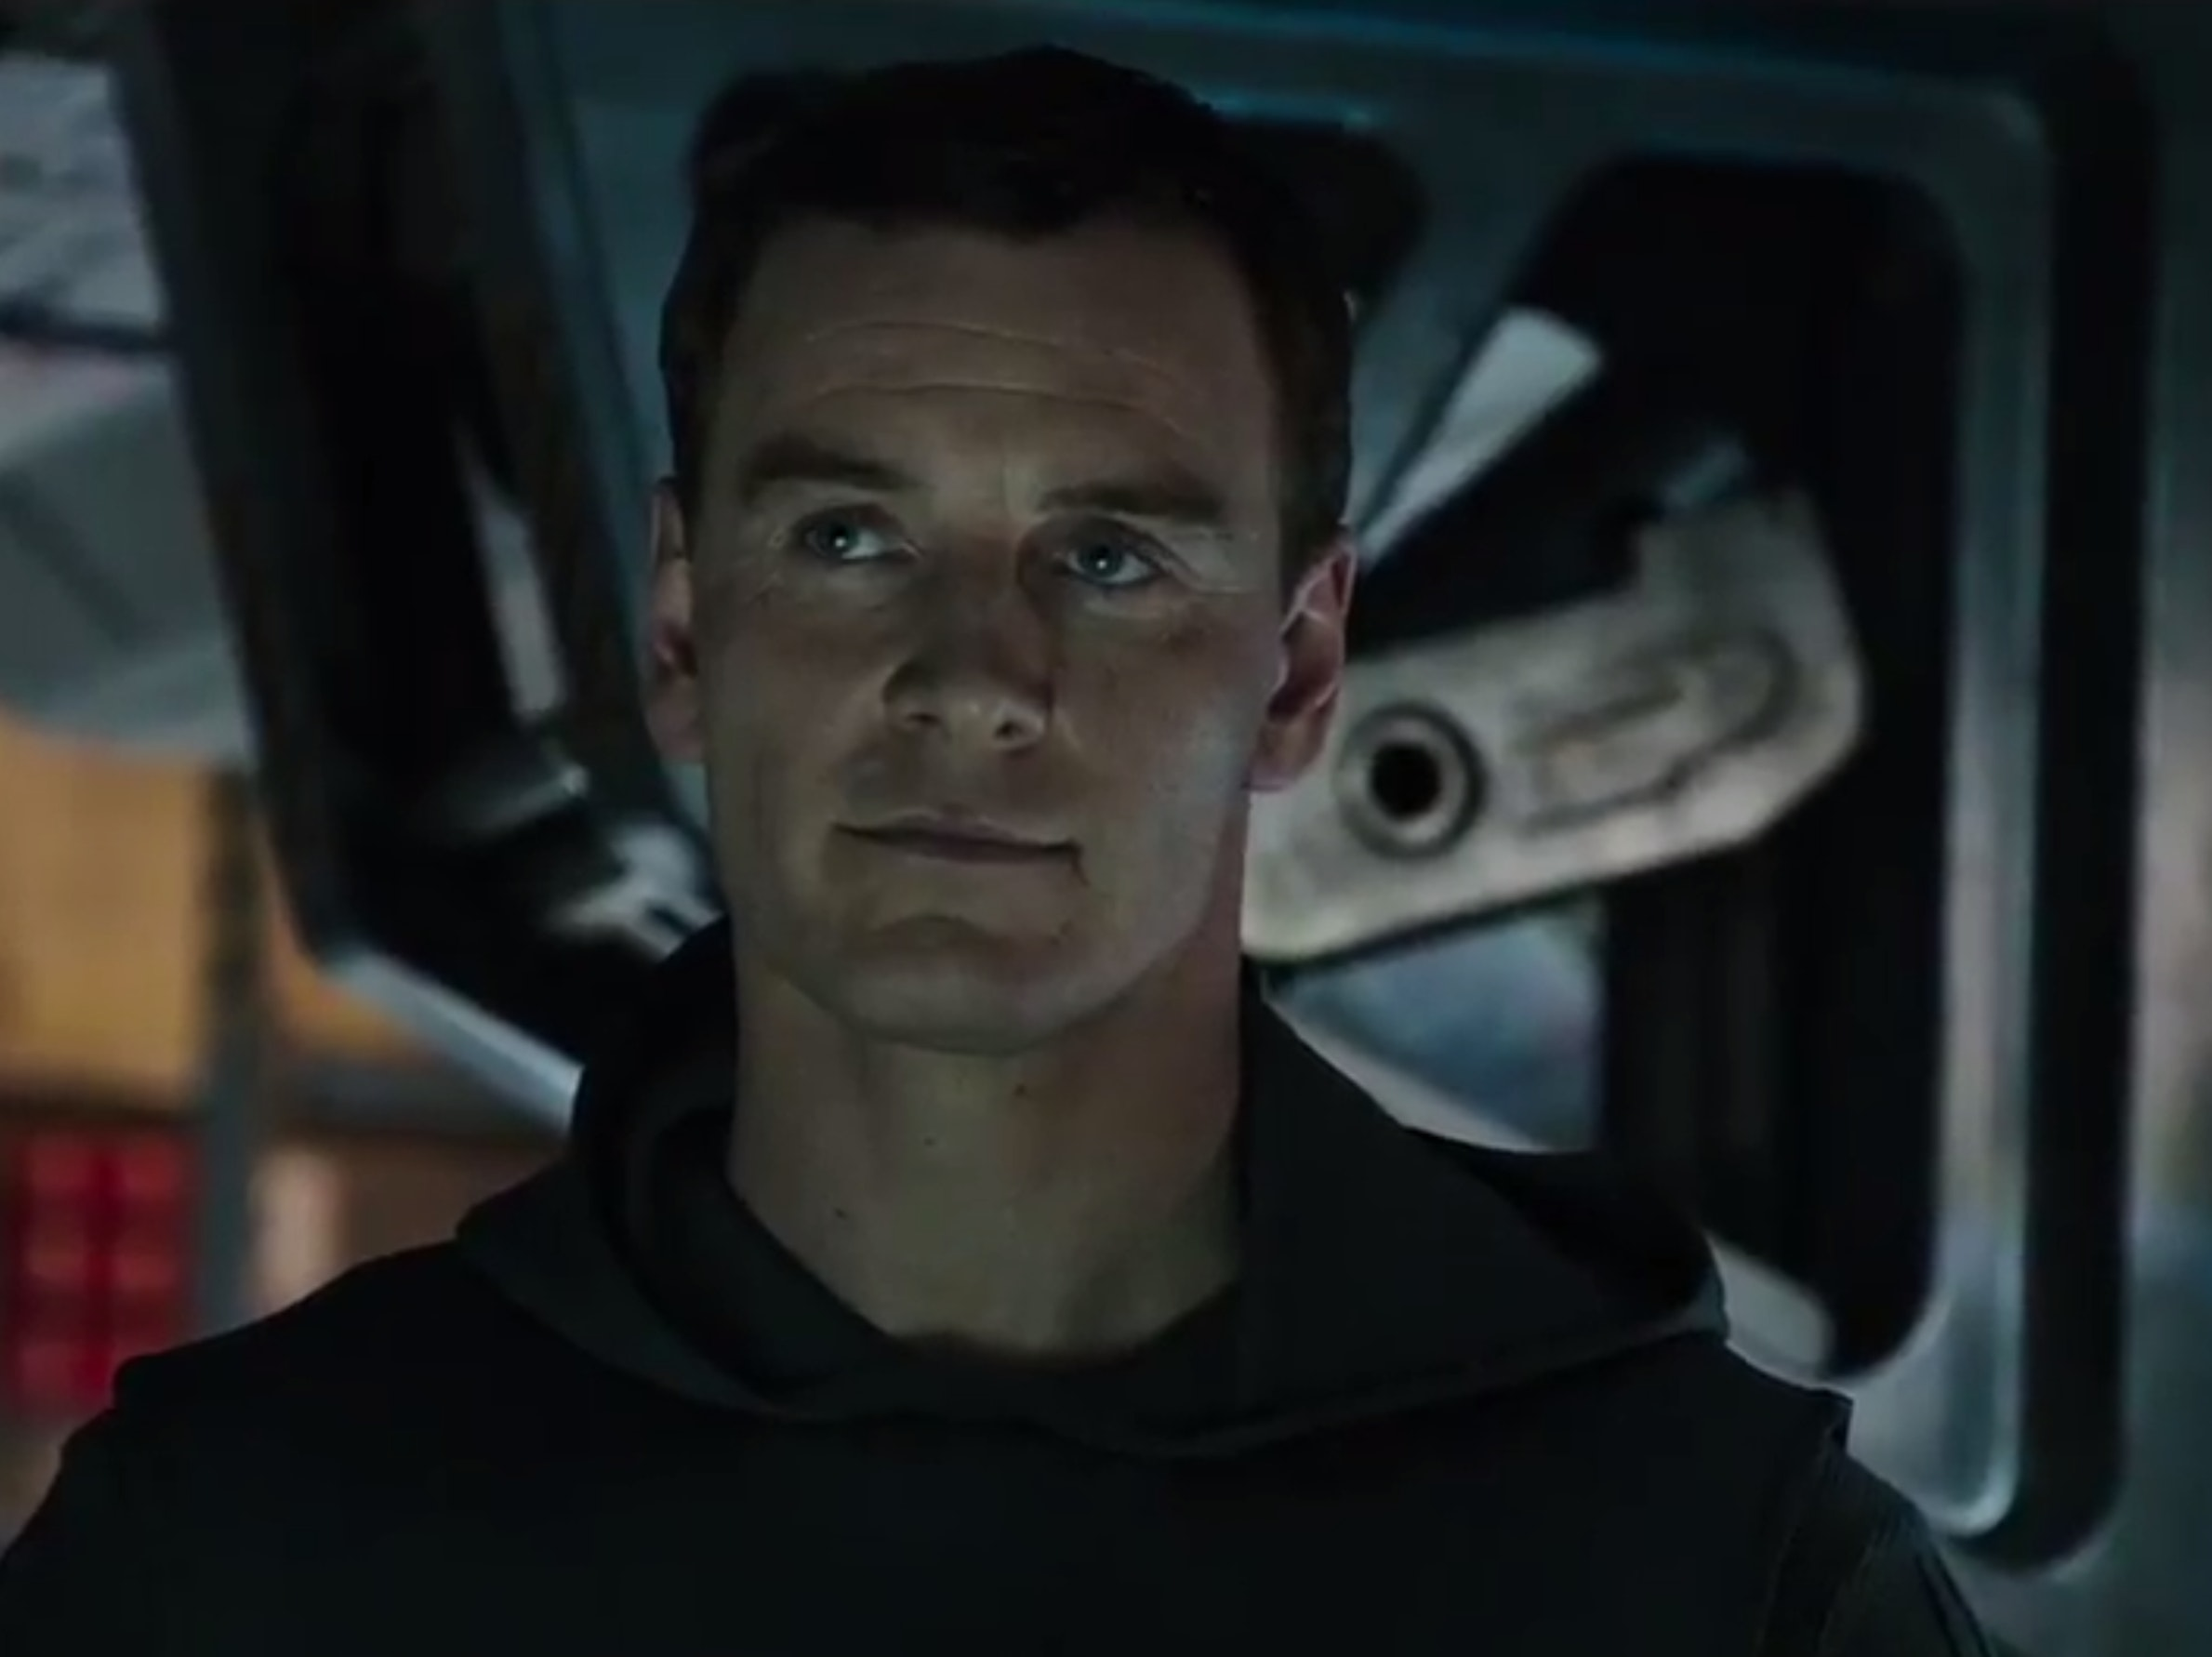 'Alien: Covenant' Prologue Short Introduces Us to the Doomed Crew